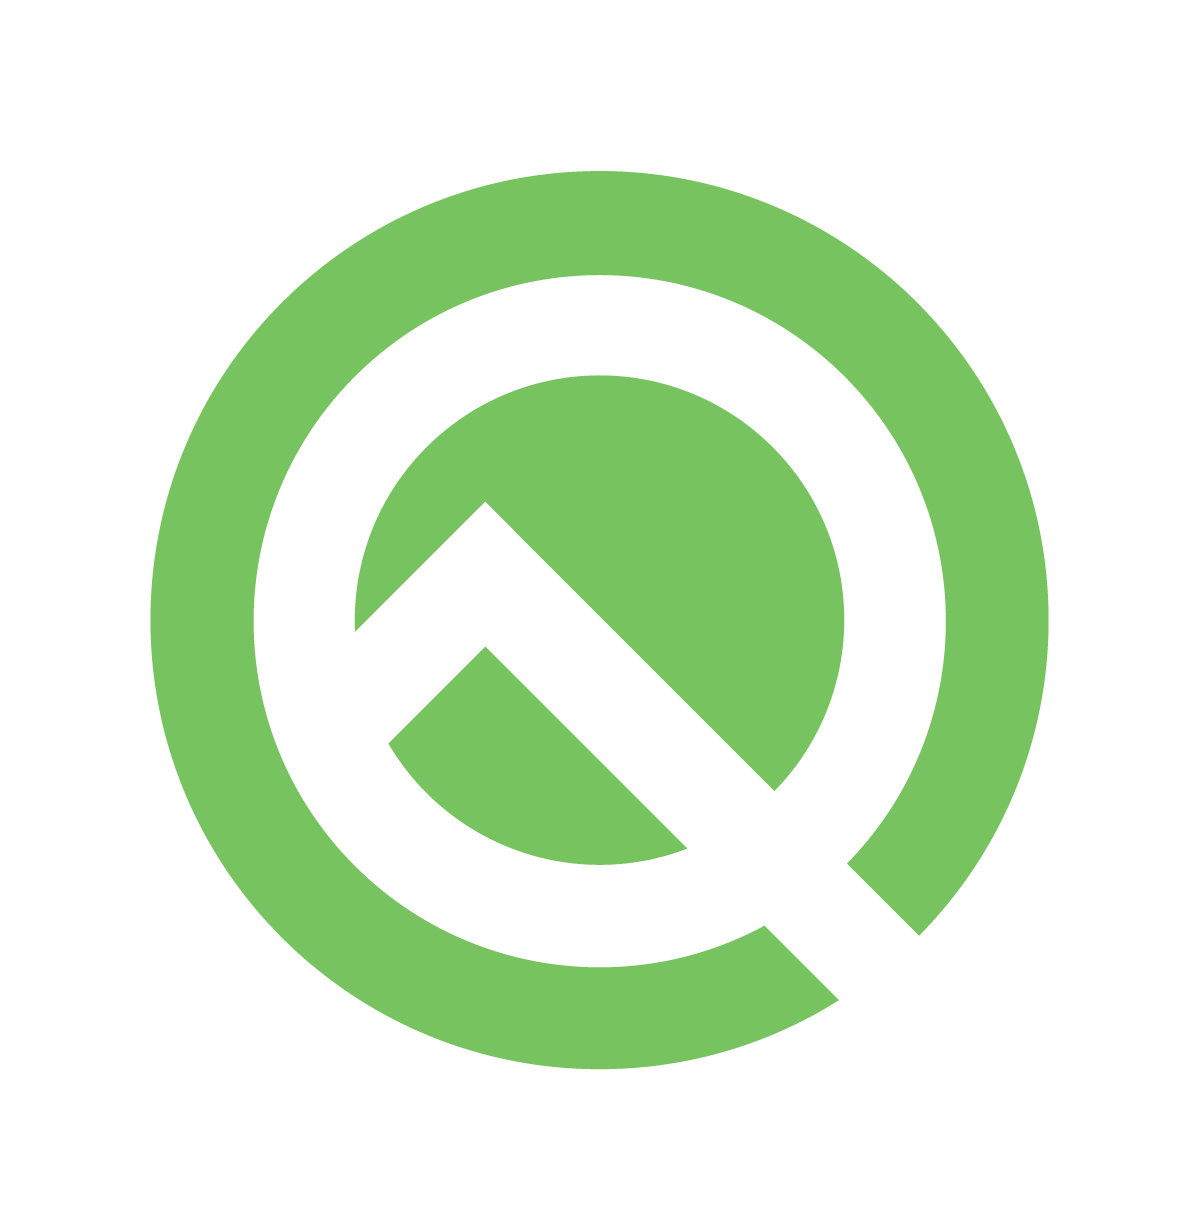 Android Developers Blog: Android Q Beta 2 update